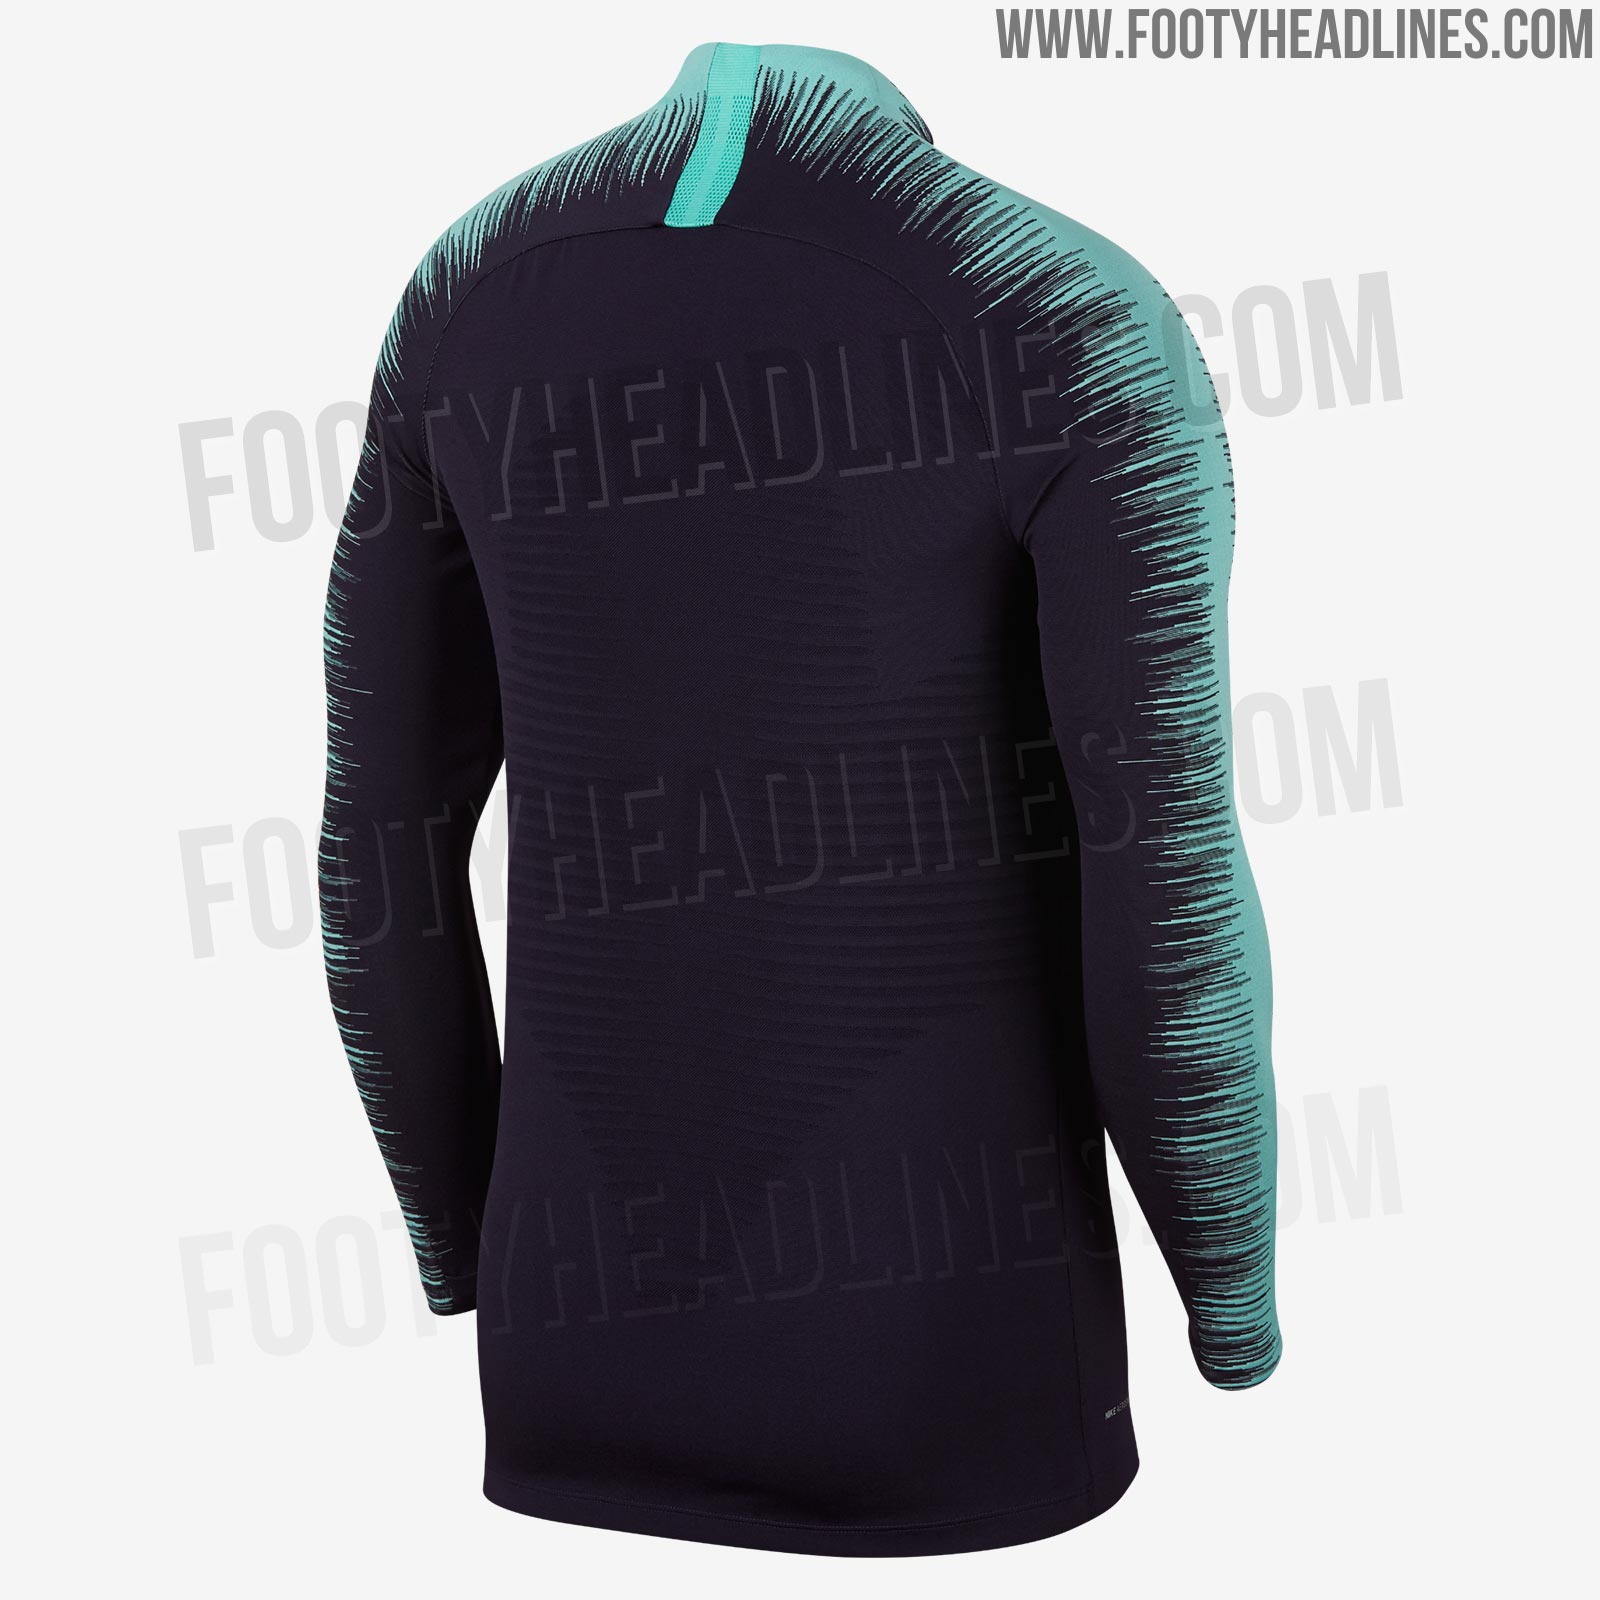 7b819fc67 The players  version of the FC Barcelona 18-19 training uniform combines a  dark blue base with teal details in the form of the new Nike template s  trademark ...